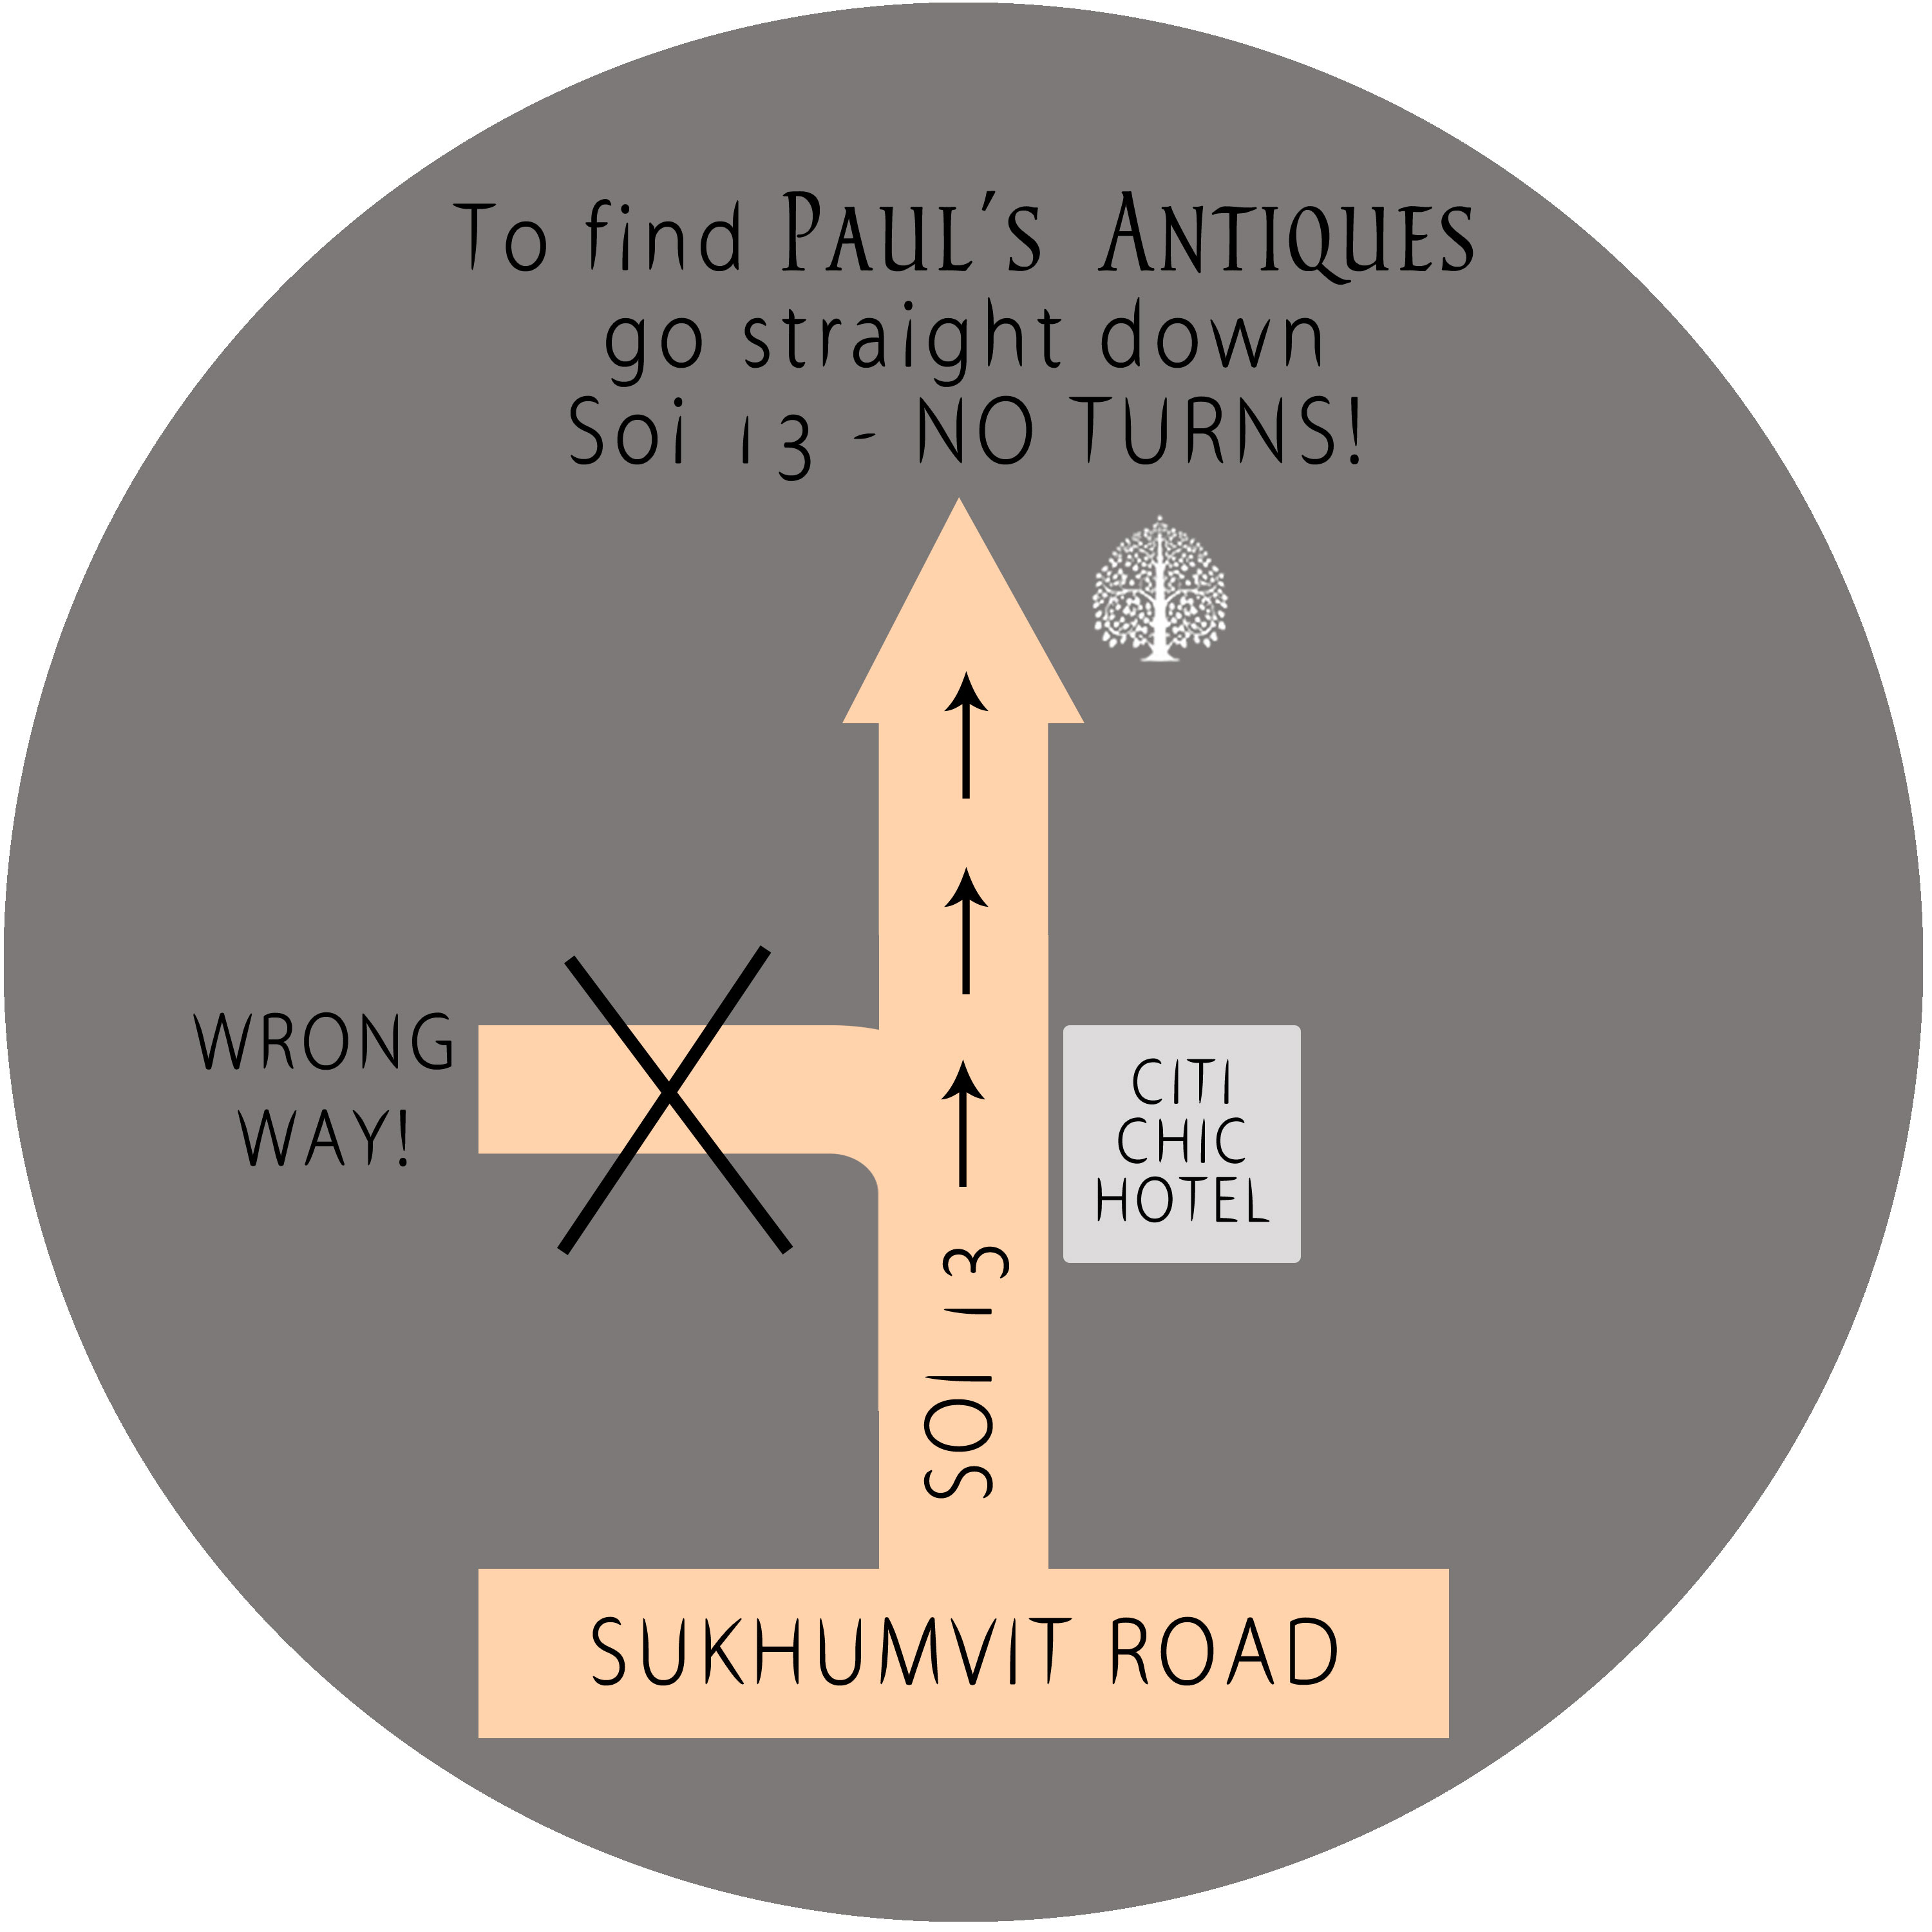 Paul's Antiques Map